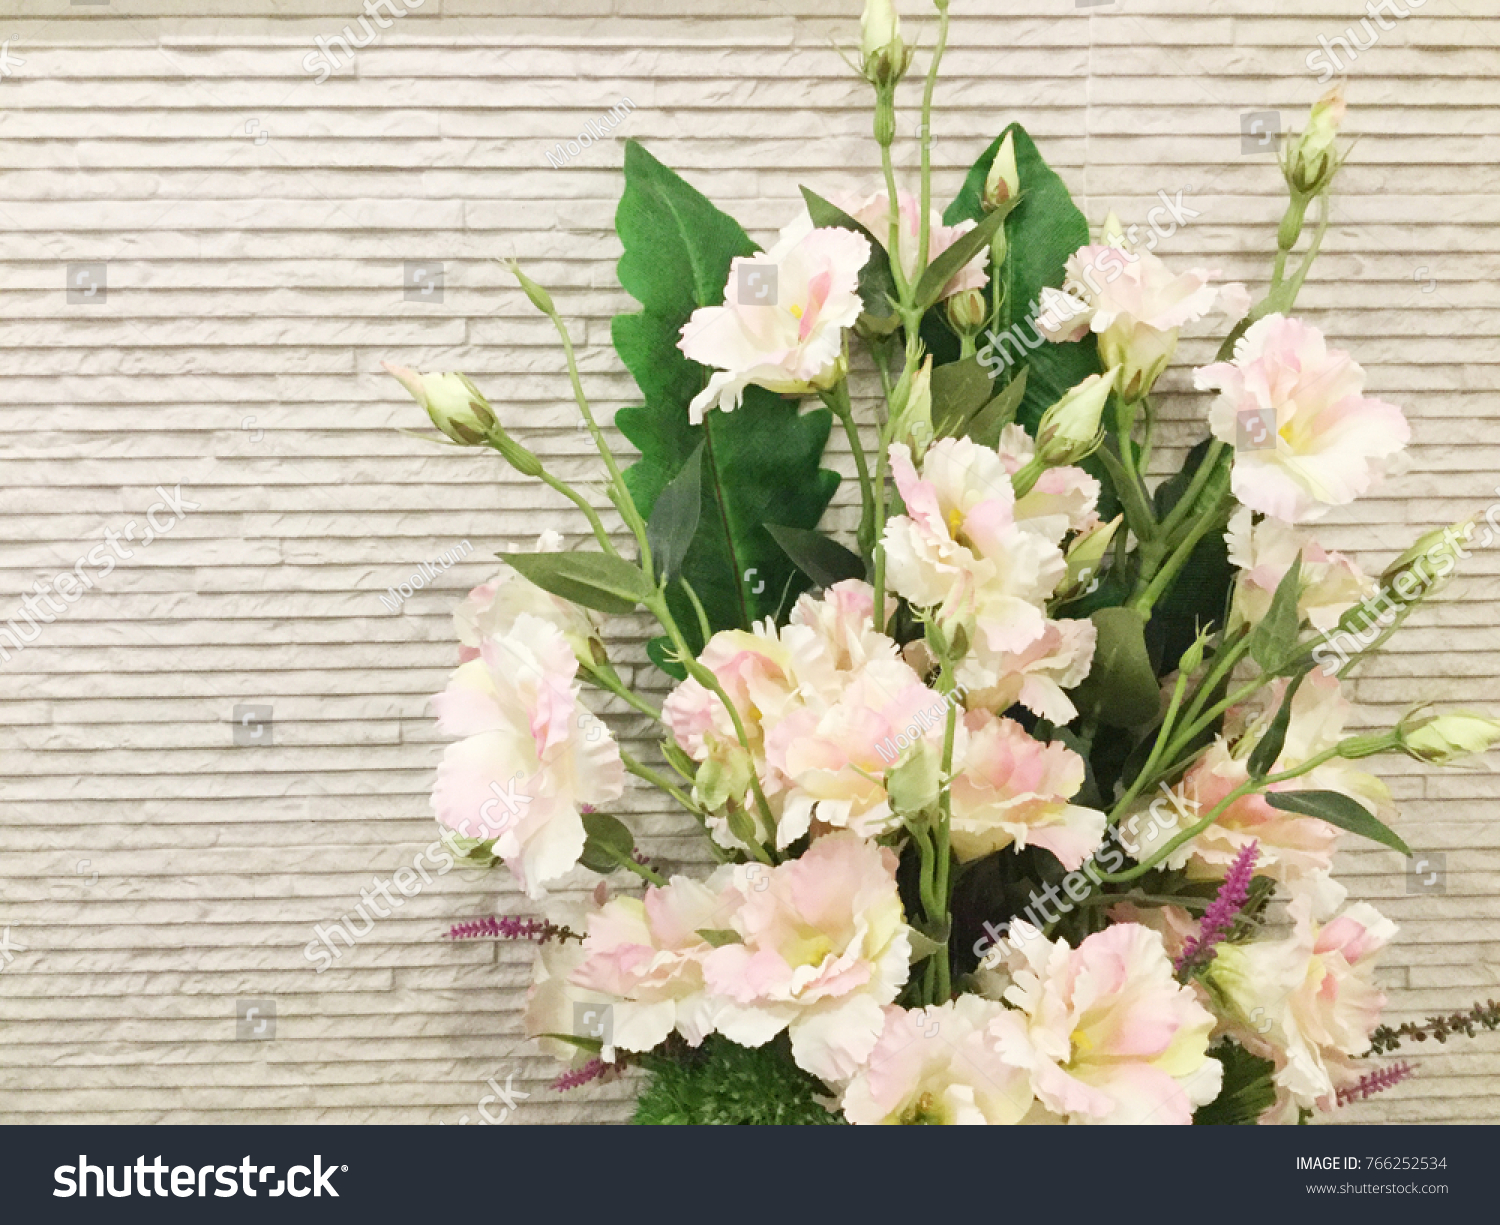 Fake flower floral background rose flowers stock photo royalty free fake flower and floral background rose flowers made of fabric the fabric flowers bouquet izmirmasajfo